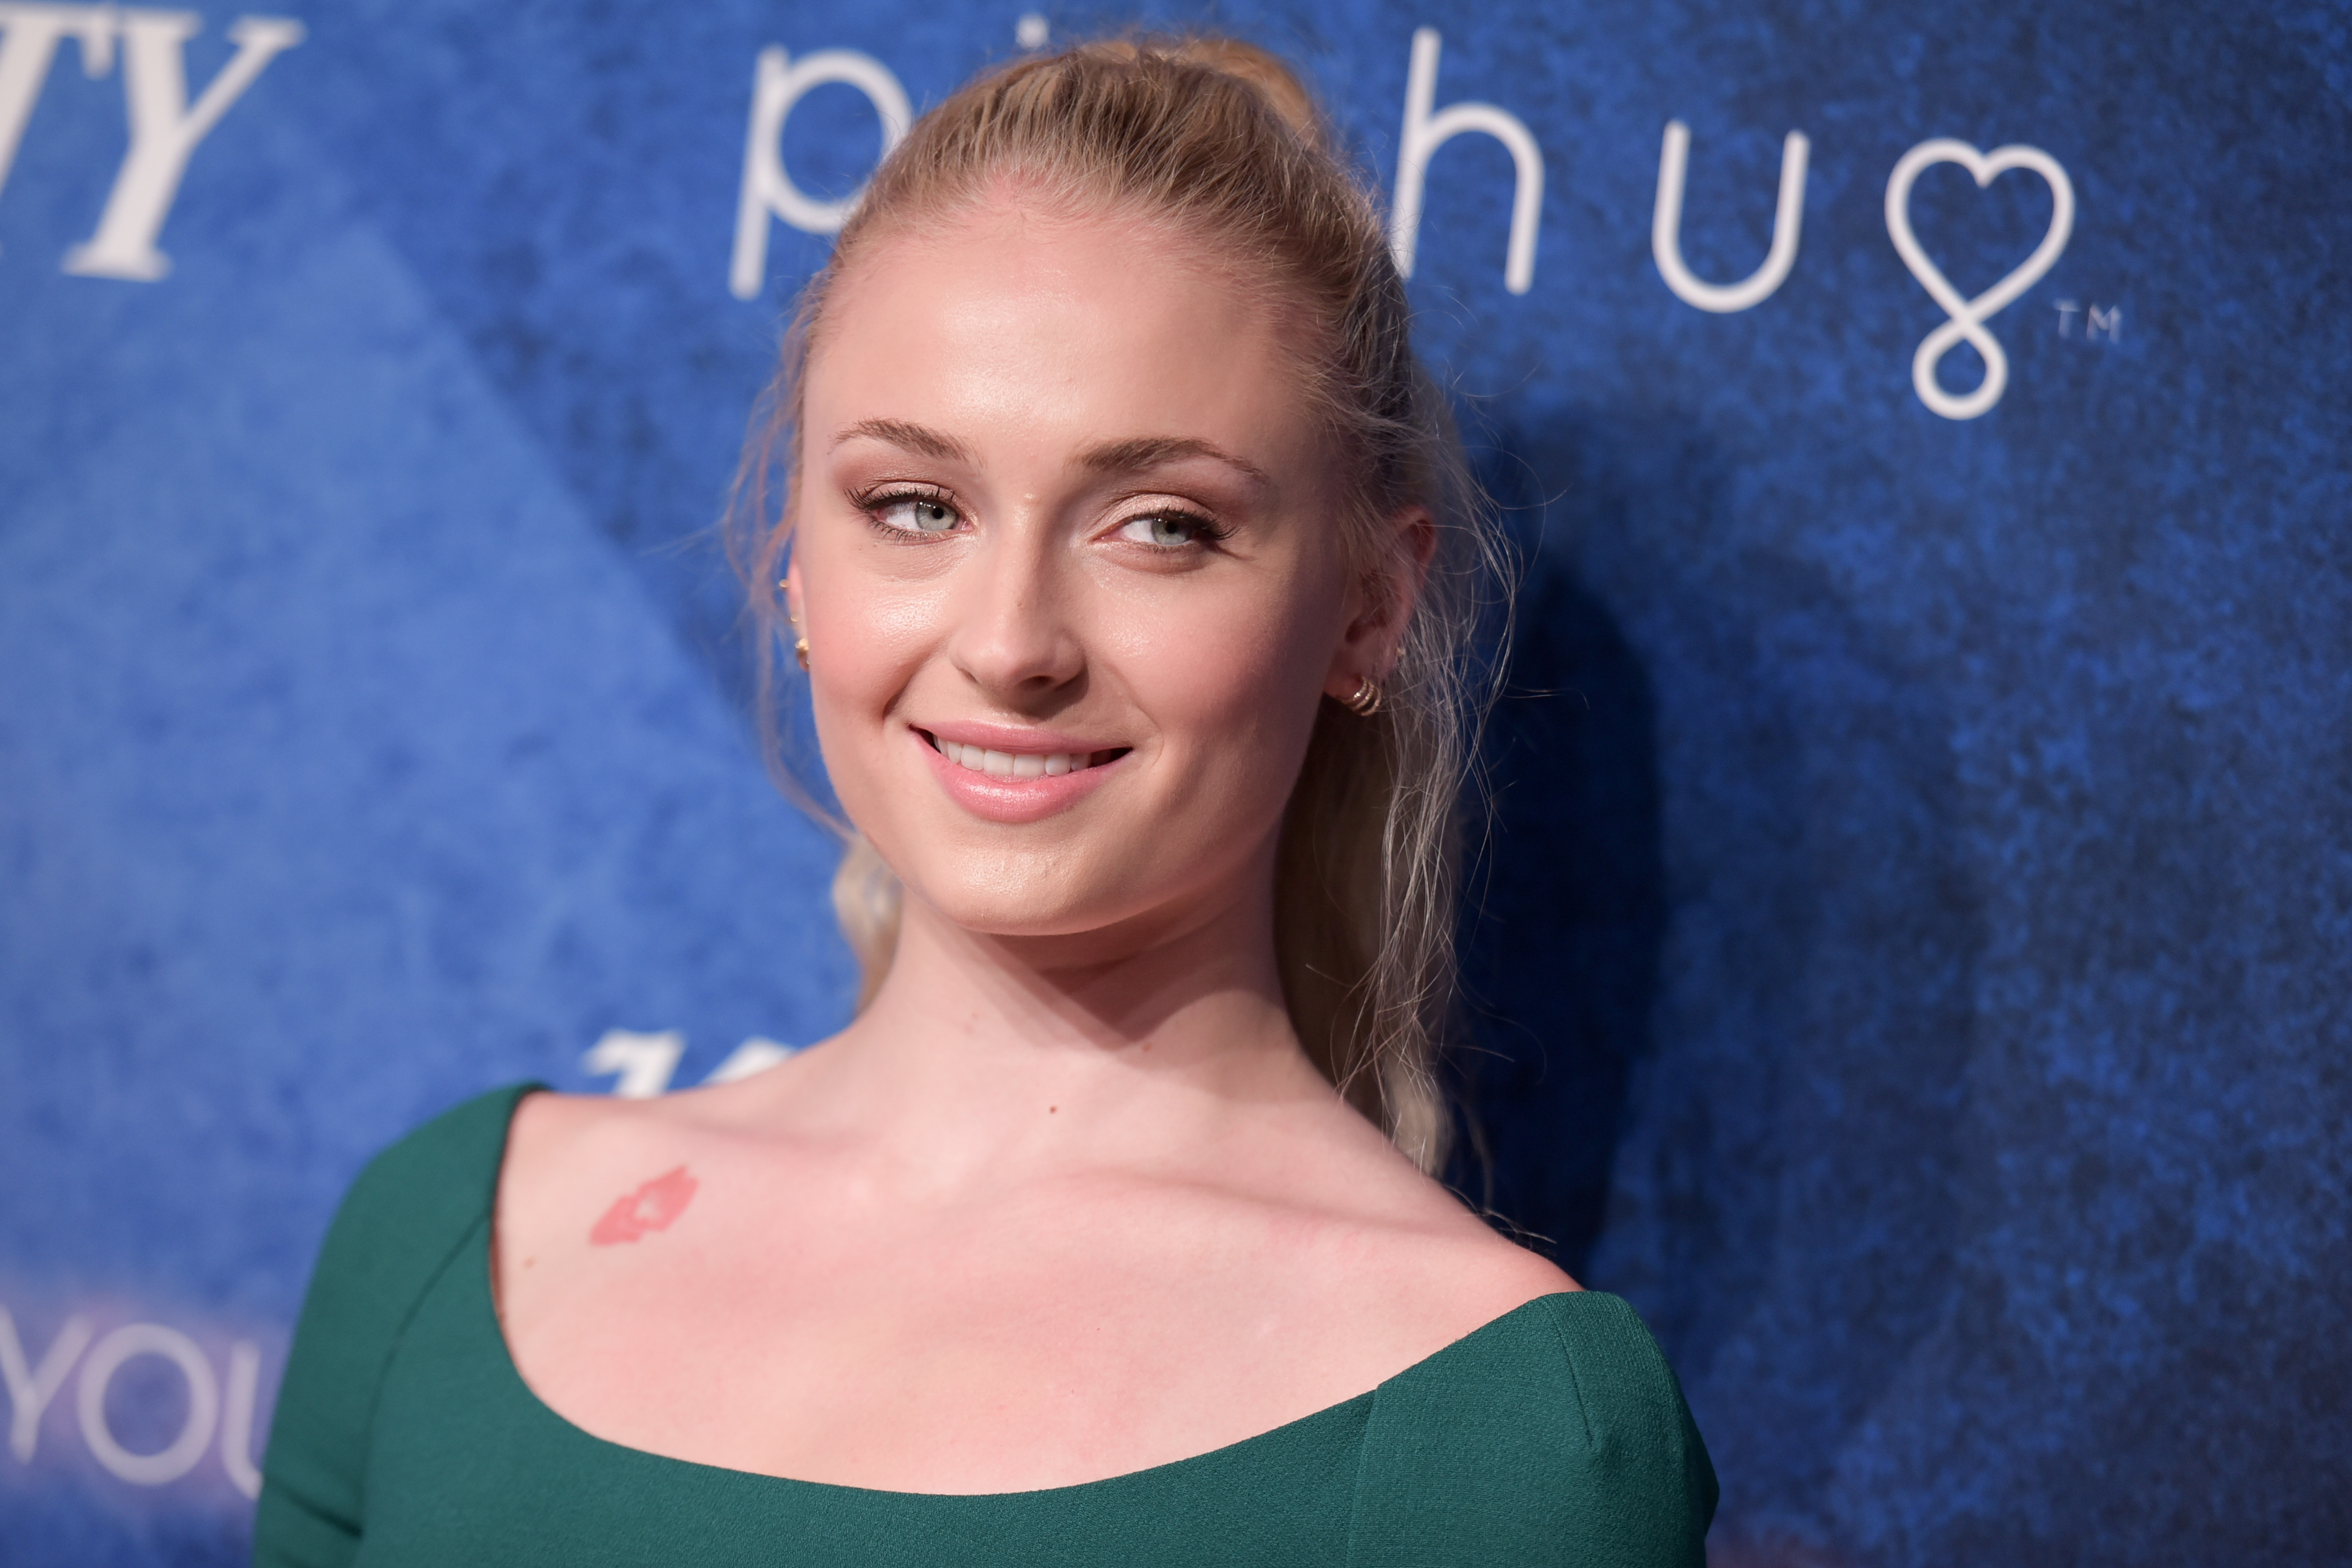 Sophie Turner attends Variety's Power of Young Hollywood event on Tuesday, Aug.16, 2016, in Los Angeles.